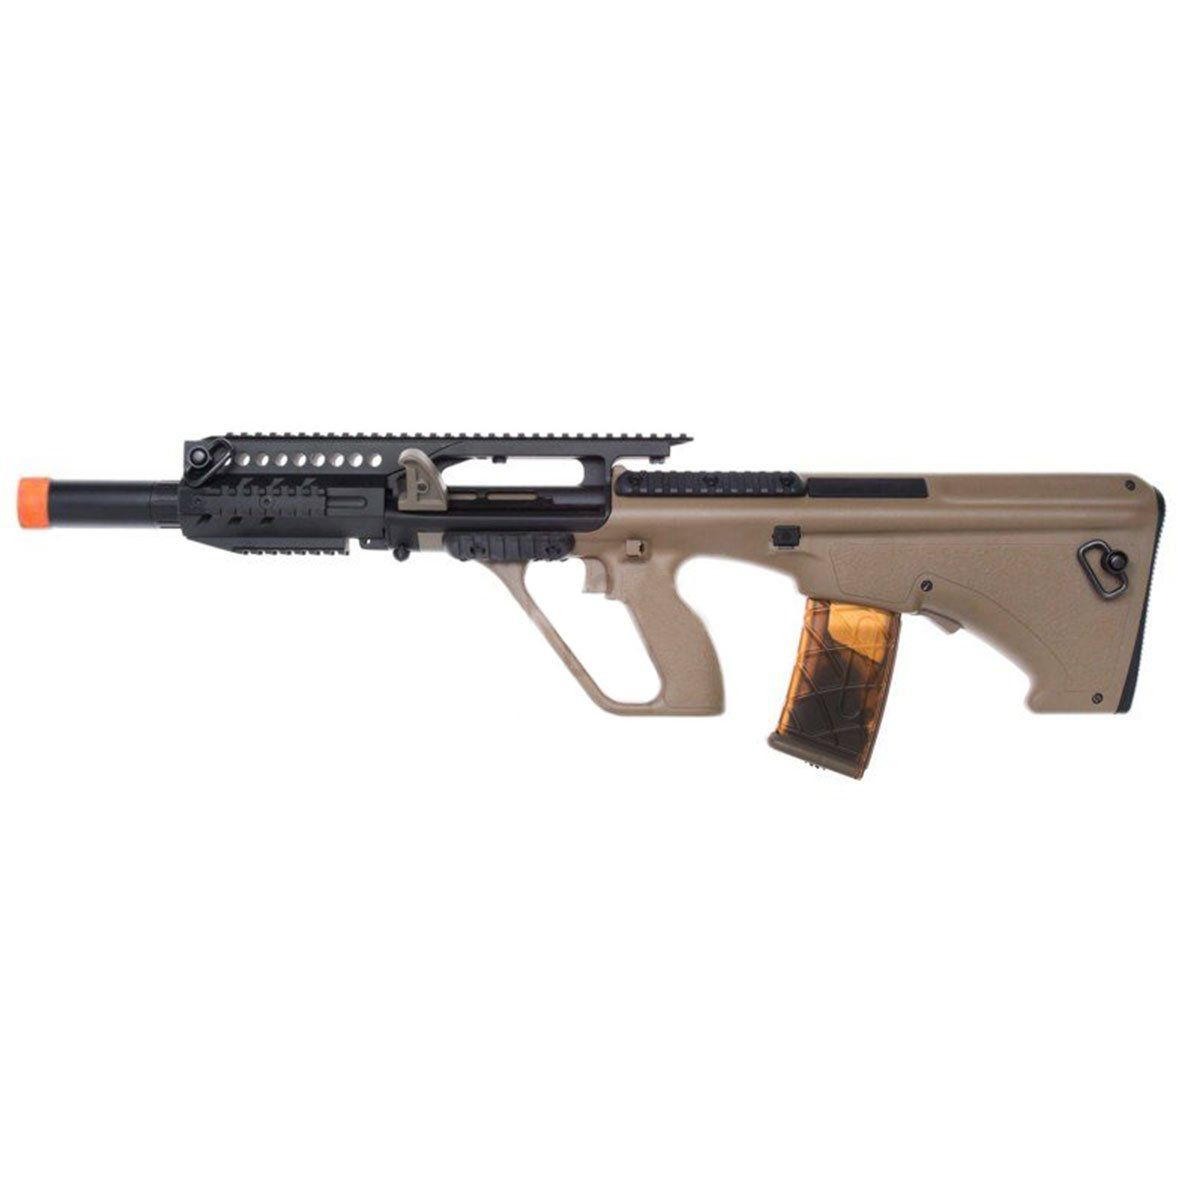 Rifle de Airsoft Evo Arms AUG A3 Trilho Ris 6mm